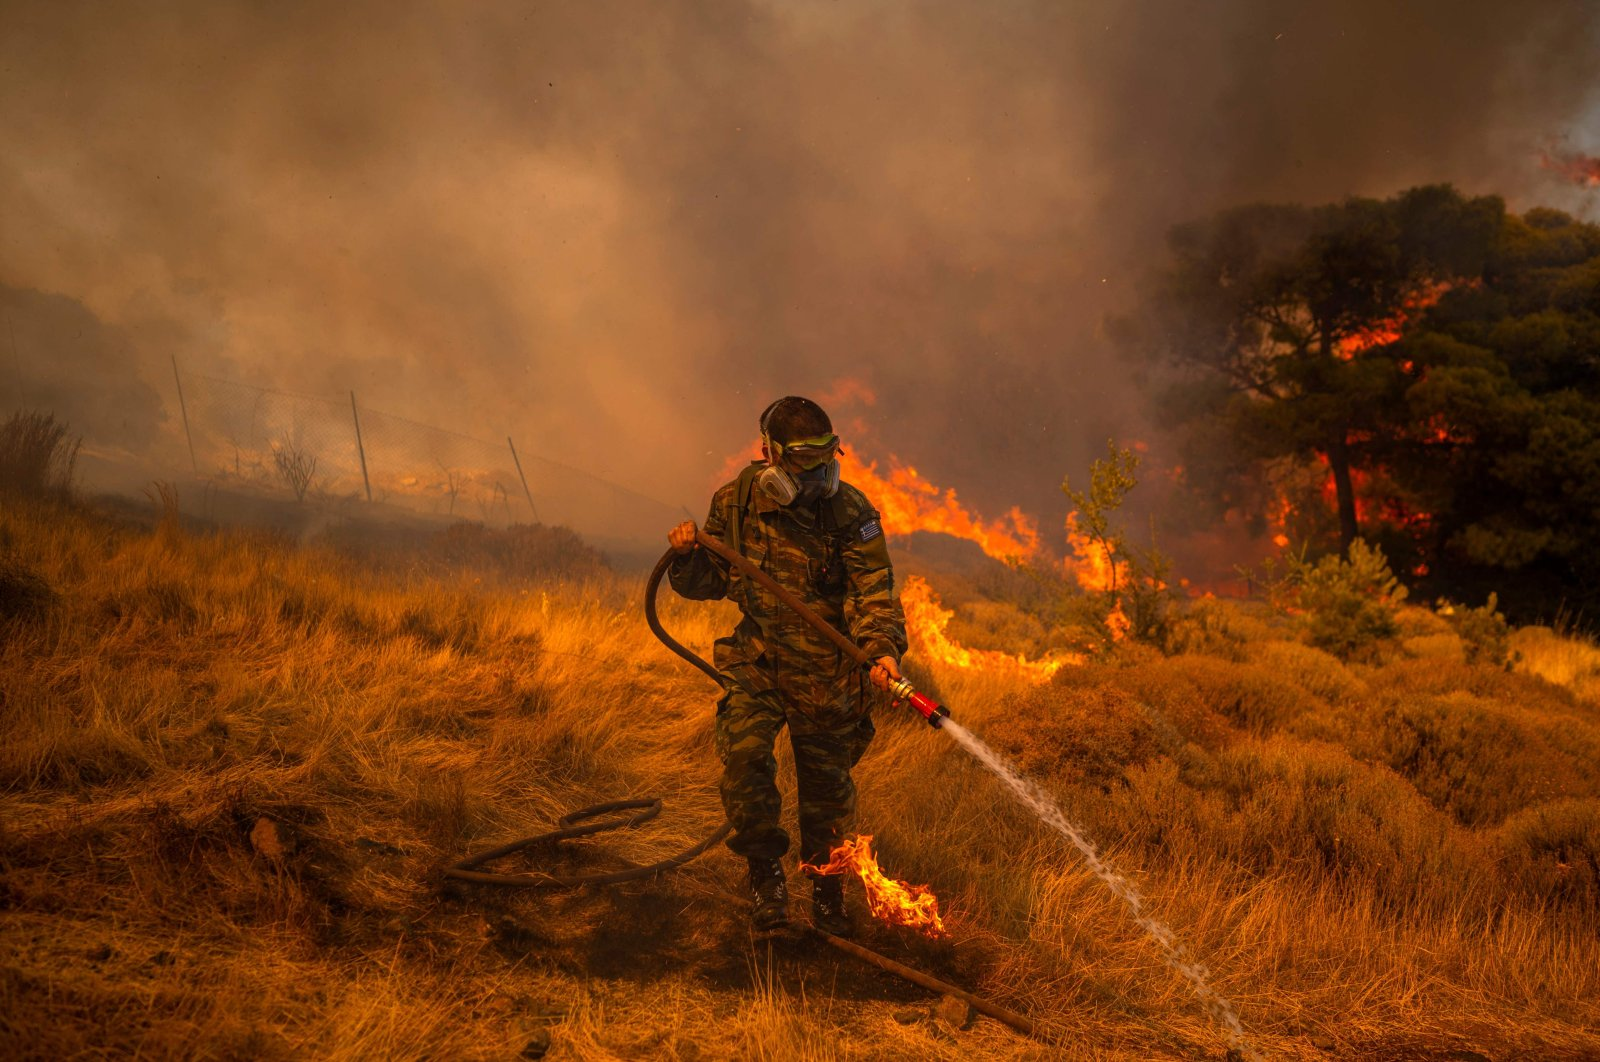 A volunteer uses a water hose to extinguish a fire in the village of Markati, near Athens, Greece, on Aug. 16, 2021. (AFP Photo)